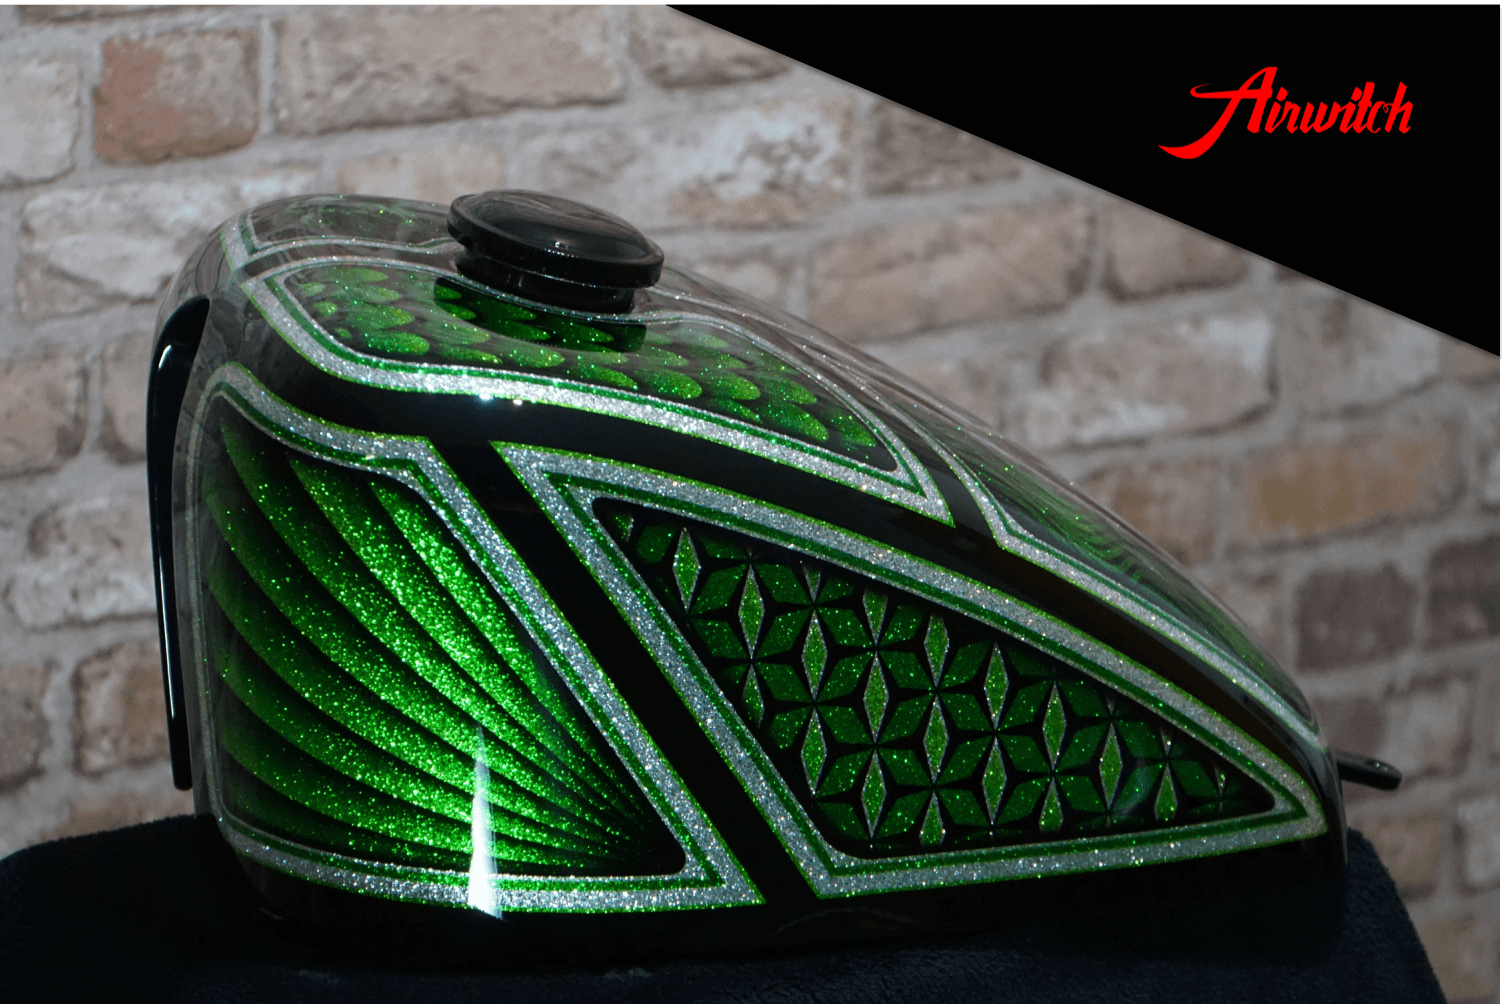 Custom Paint Harley-Davidson Shovelhead Metalflakes Frisco Green Silver Airwitch